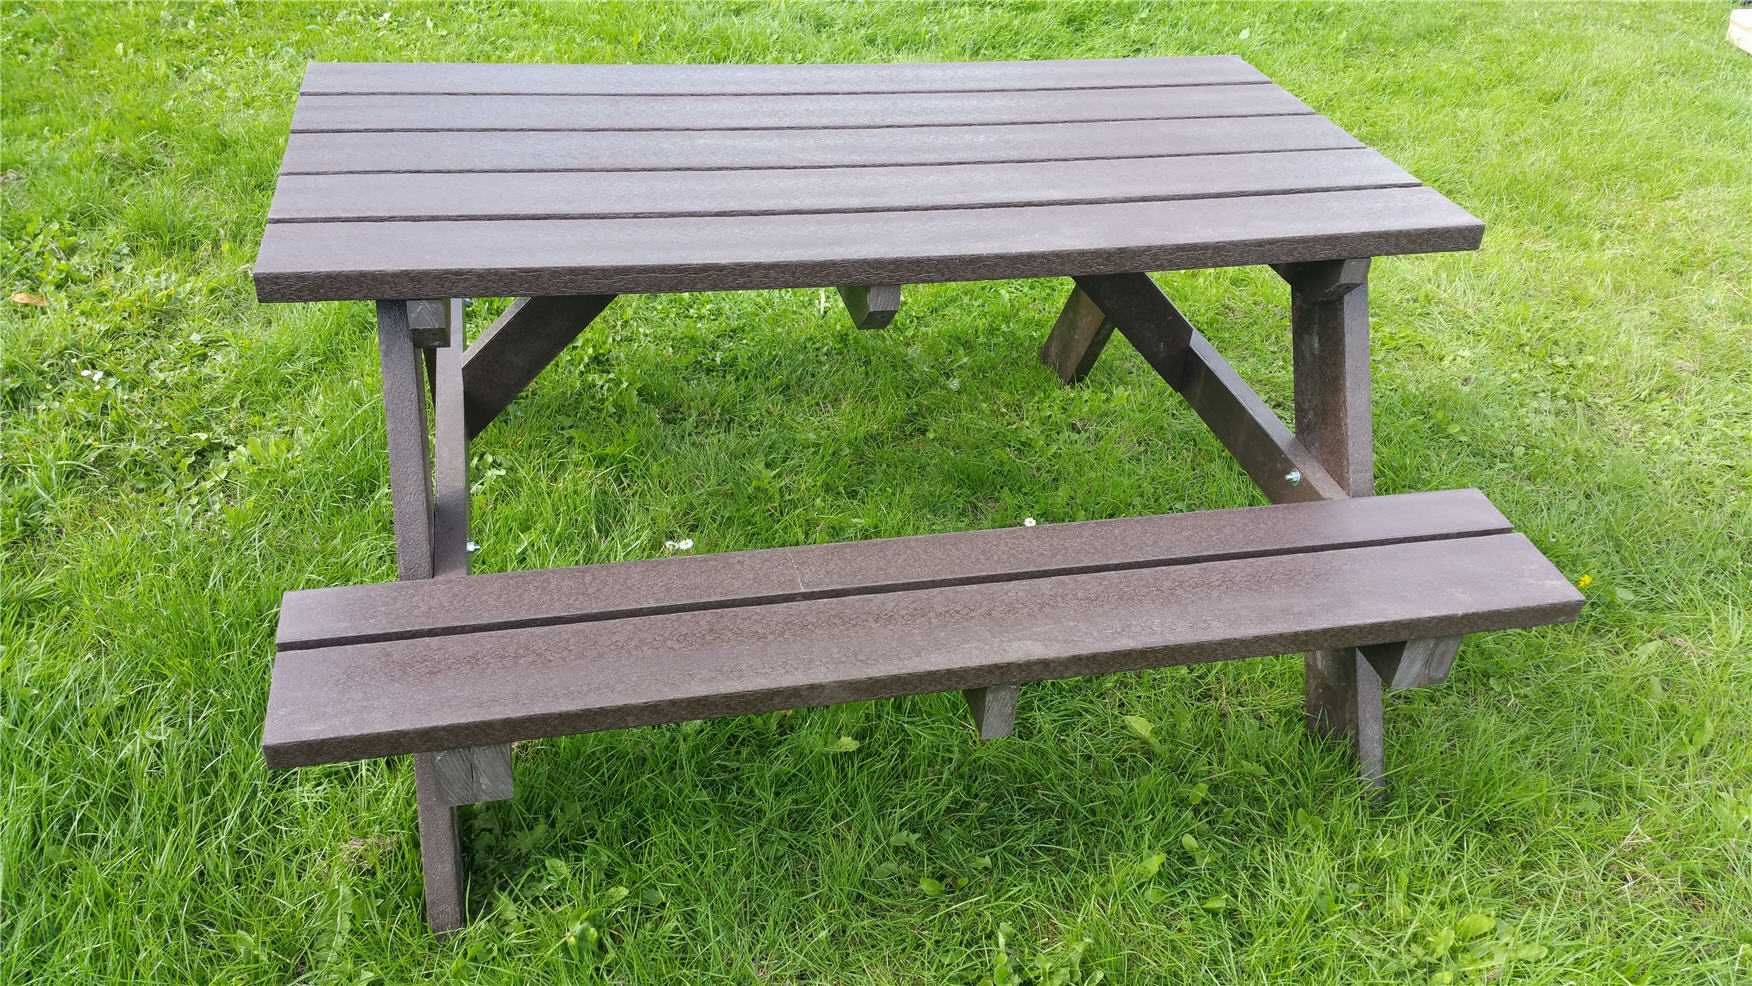 Picnic Benches Made From Composite Material